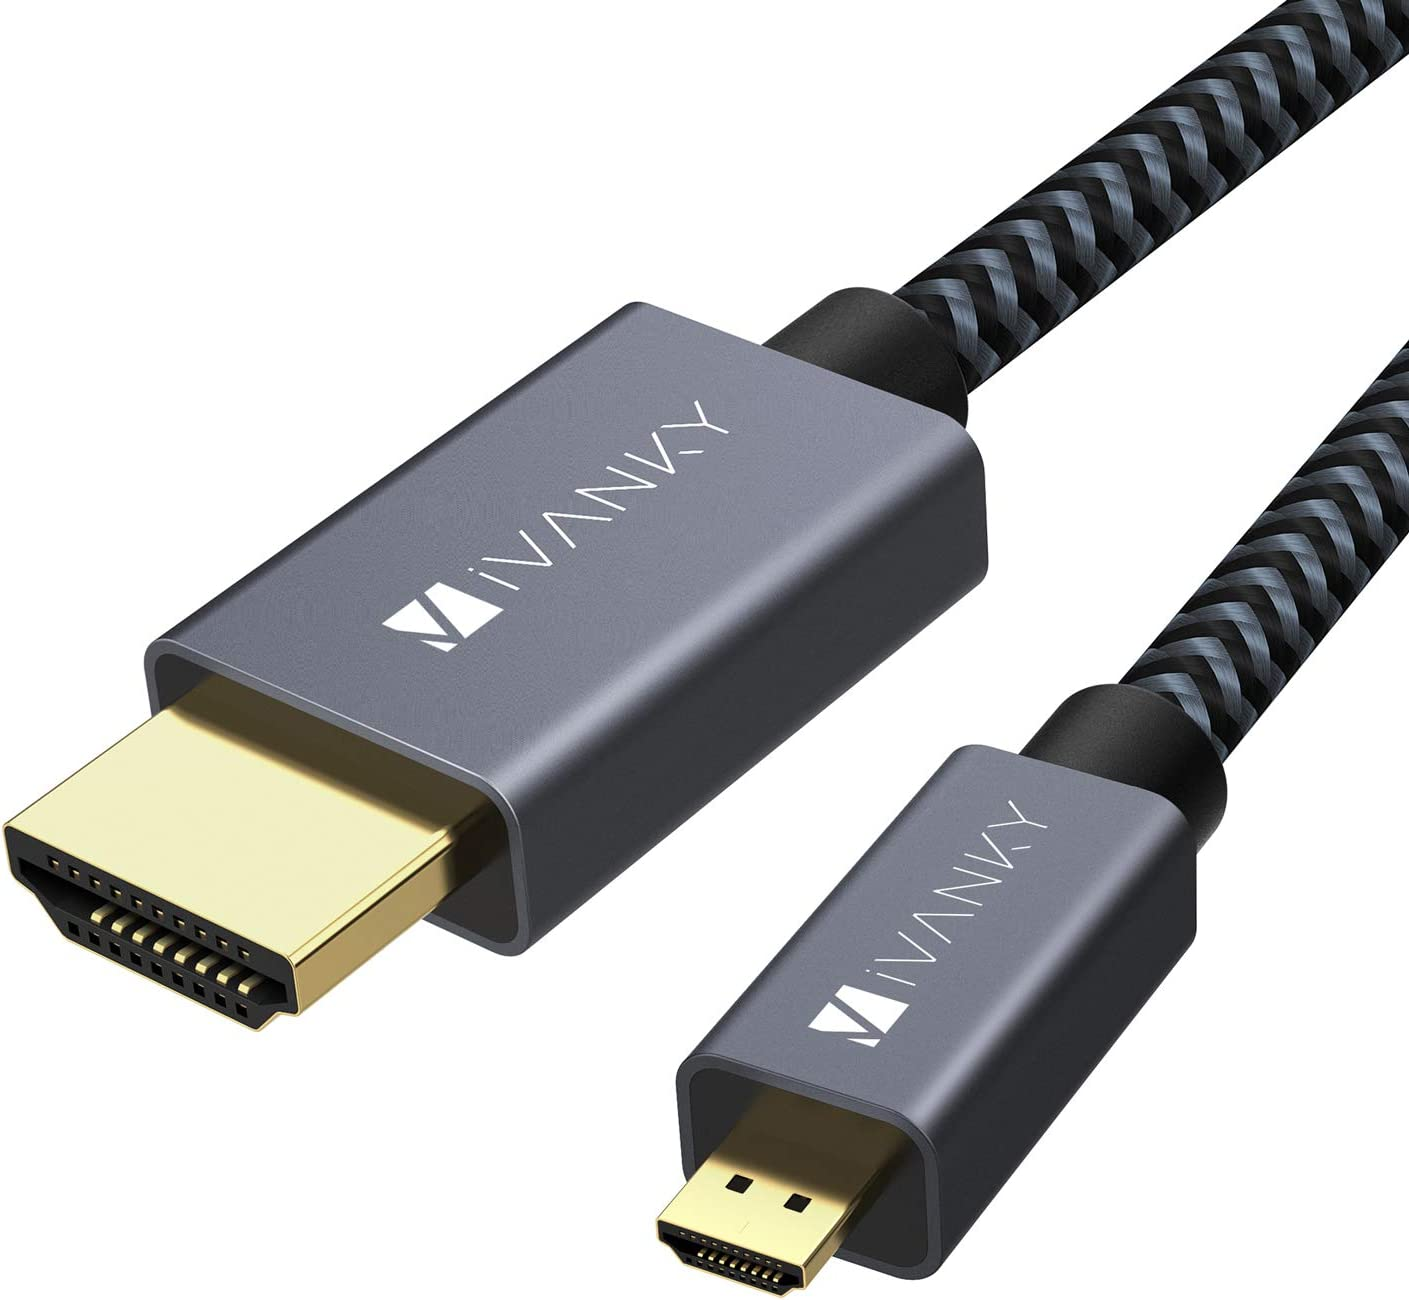 iVANKY Cable Micro HDMI a HDMI, 3D 4K Alta Velocidad con HDR, UHD, HDCP, Audio Return Channel, HDMI Ethernet Channel, Dolby TrueHD- 1 Metro